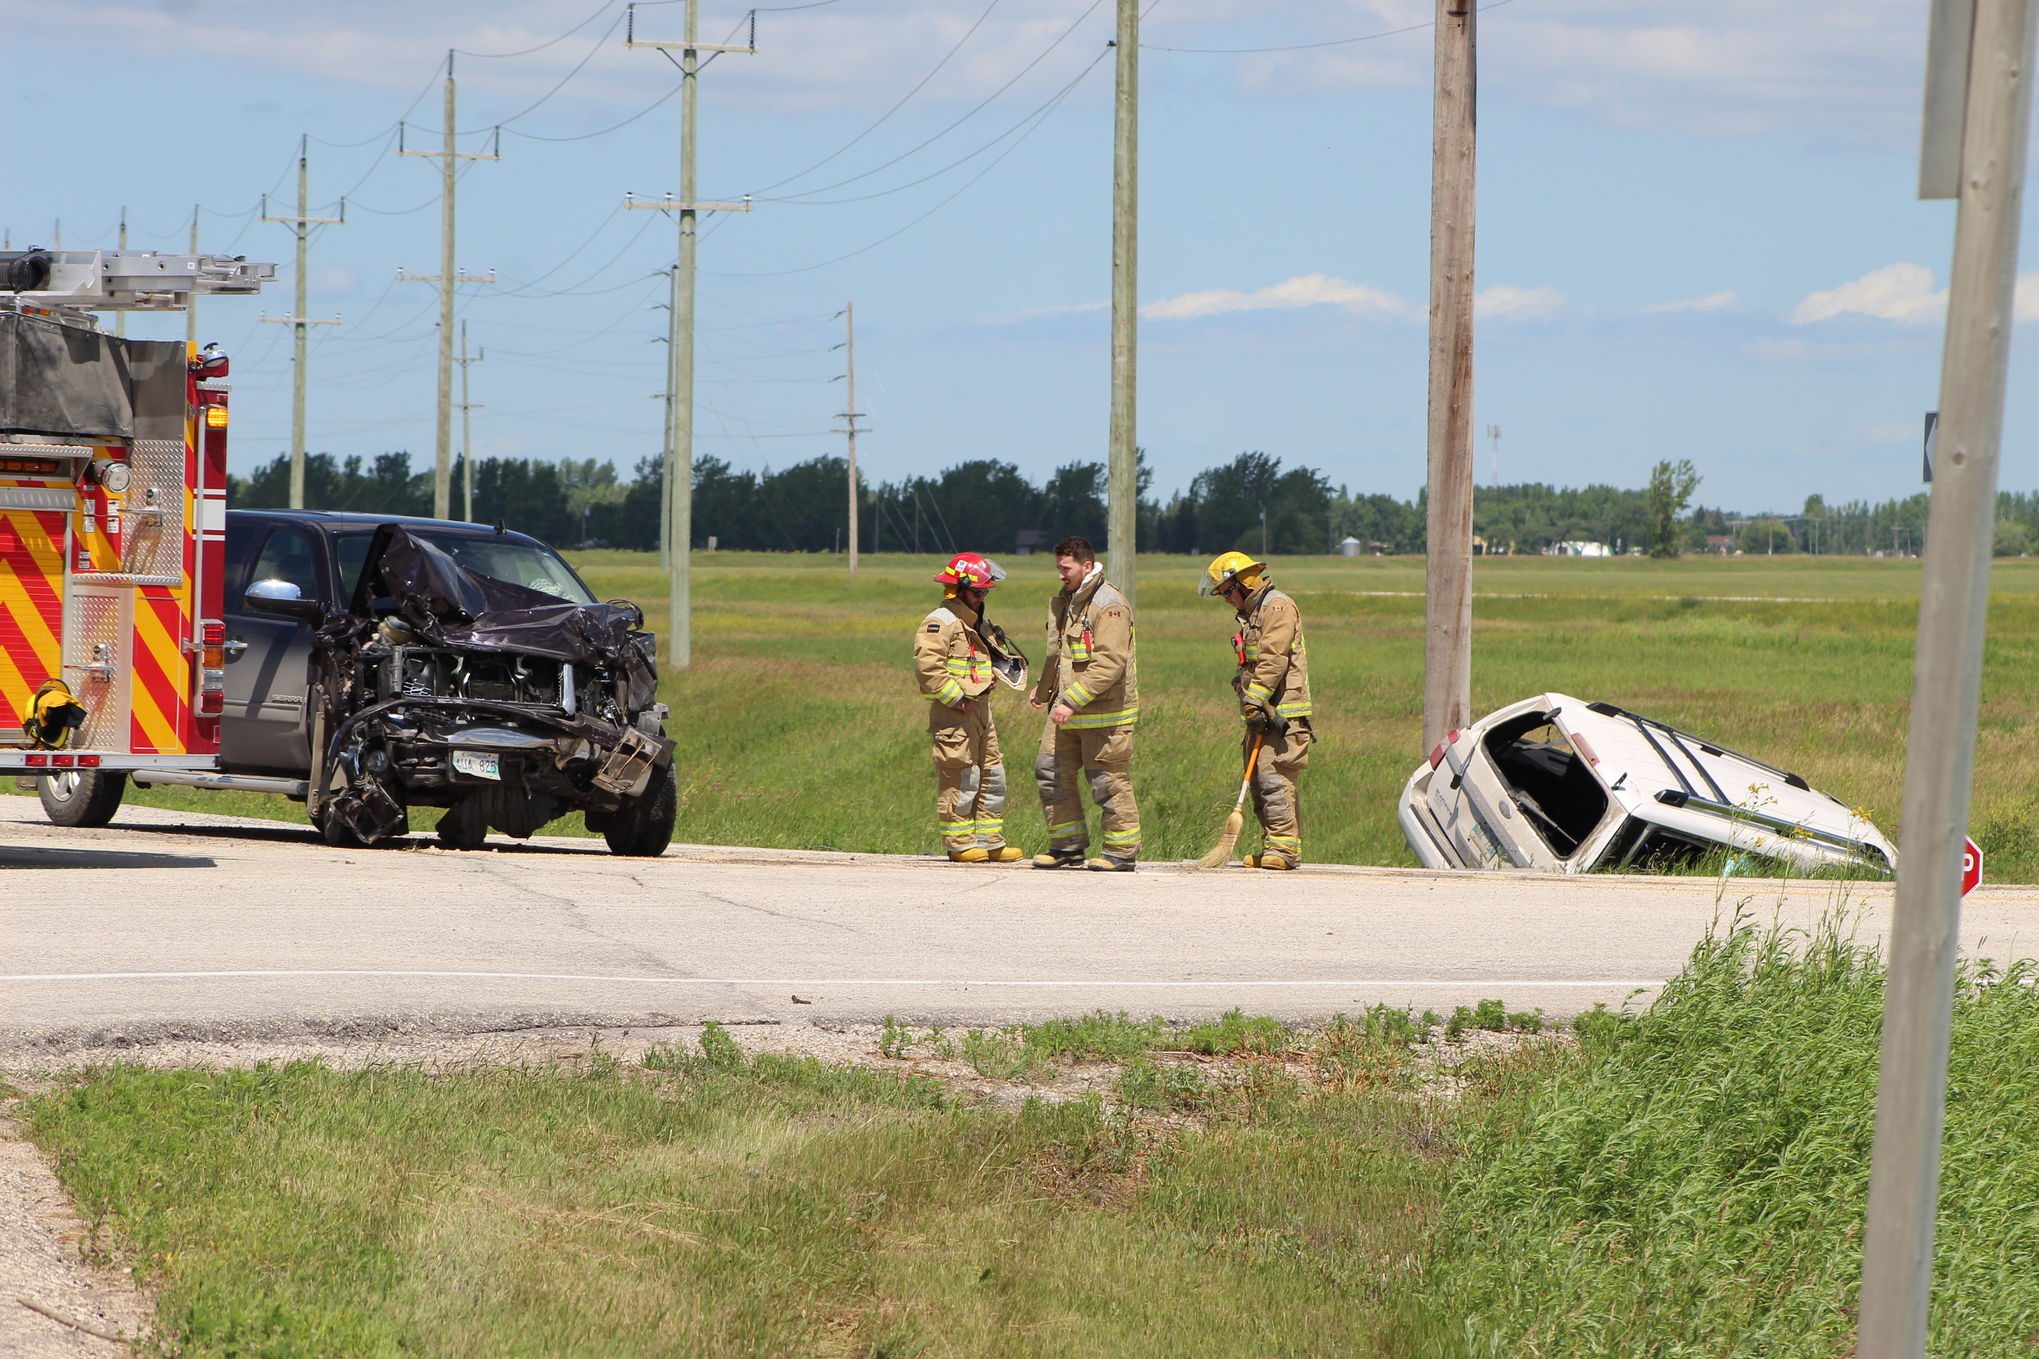 Members of the Ritchot Fire Department sweep up debris at the site of a two-vehicle collision at the intersection of Highway 59 and Provincial Road 210 south of Ile des Chenes on Monday afternoon.